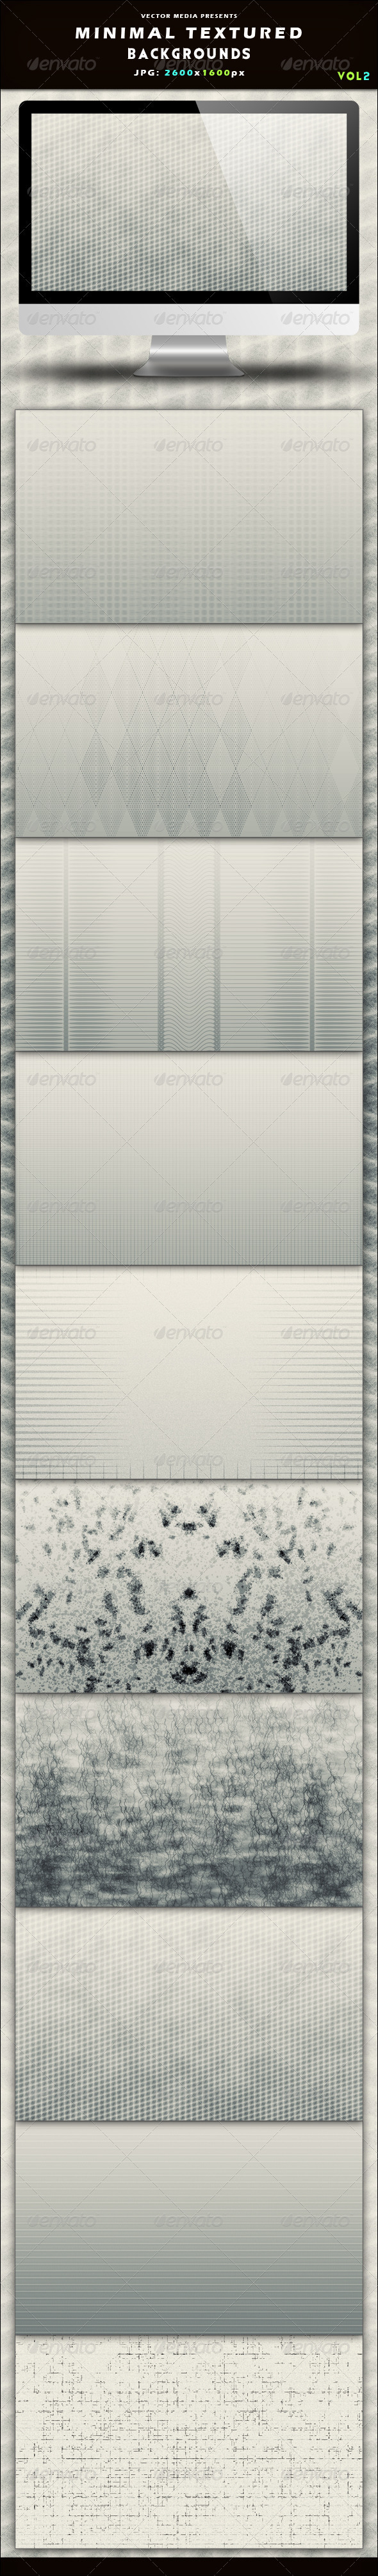 GraphicRiver Minimal Textured Backgrounds Vol 2 3750014